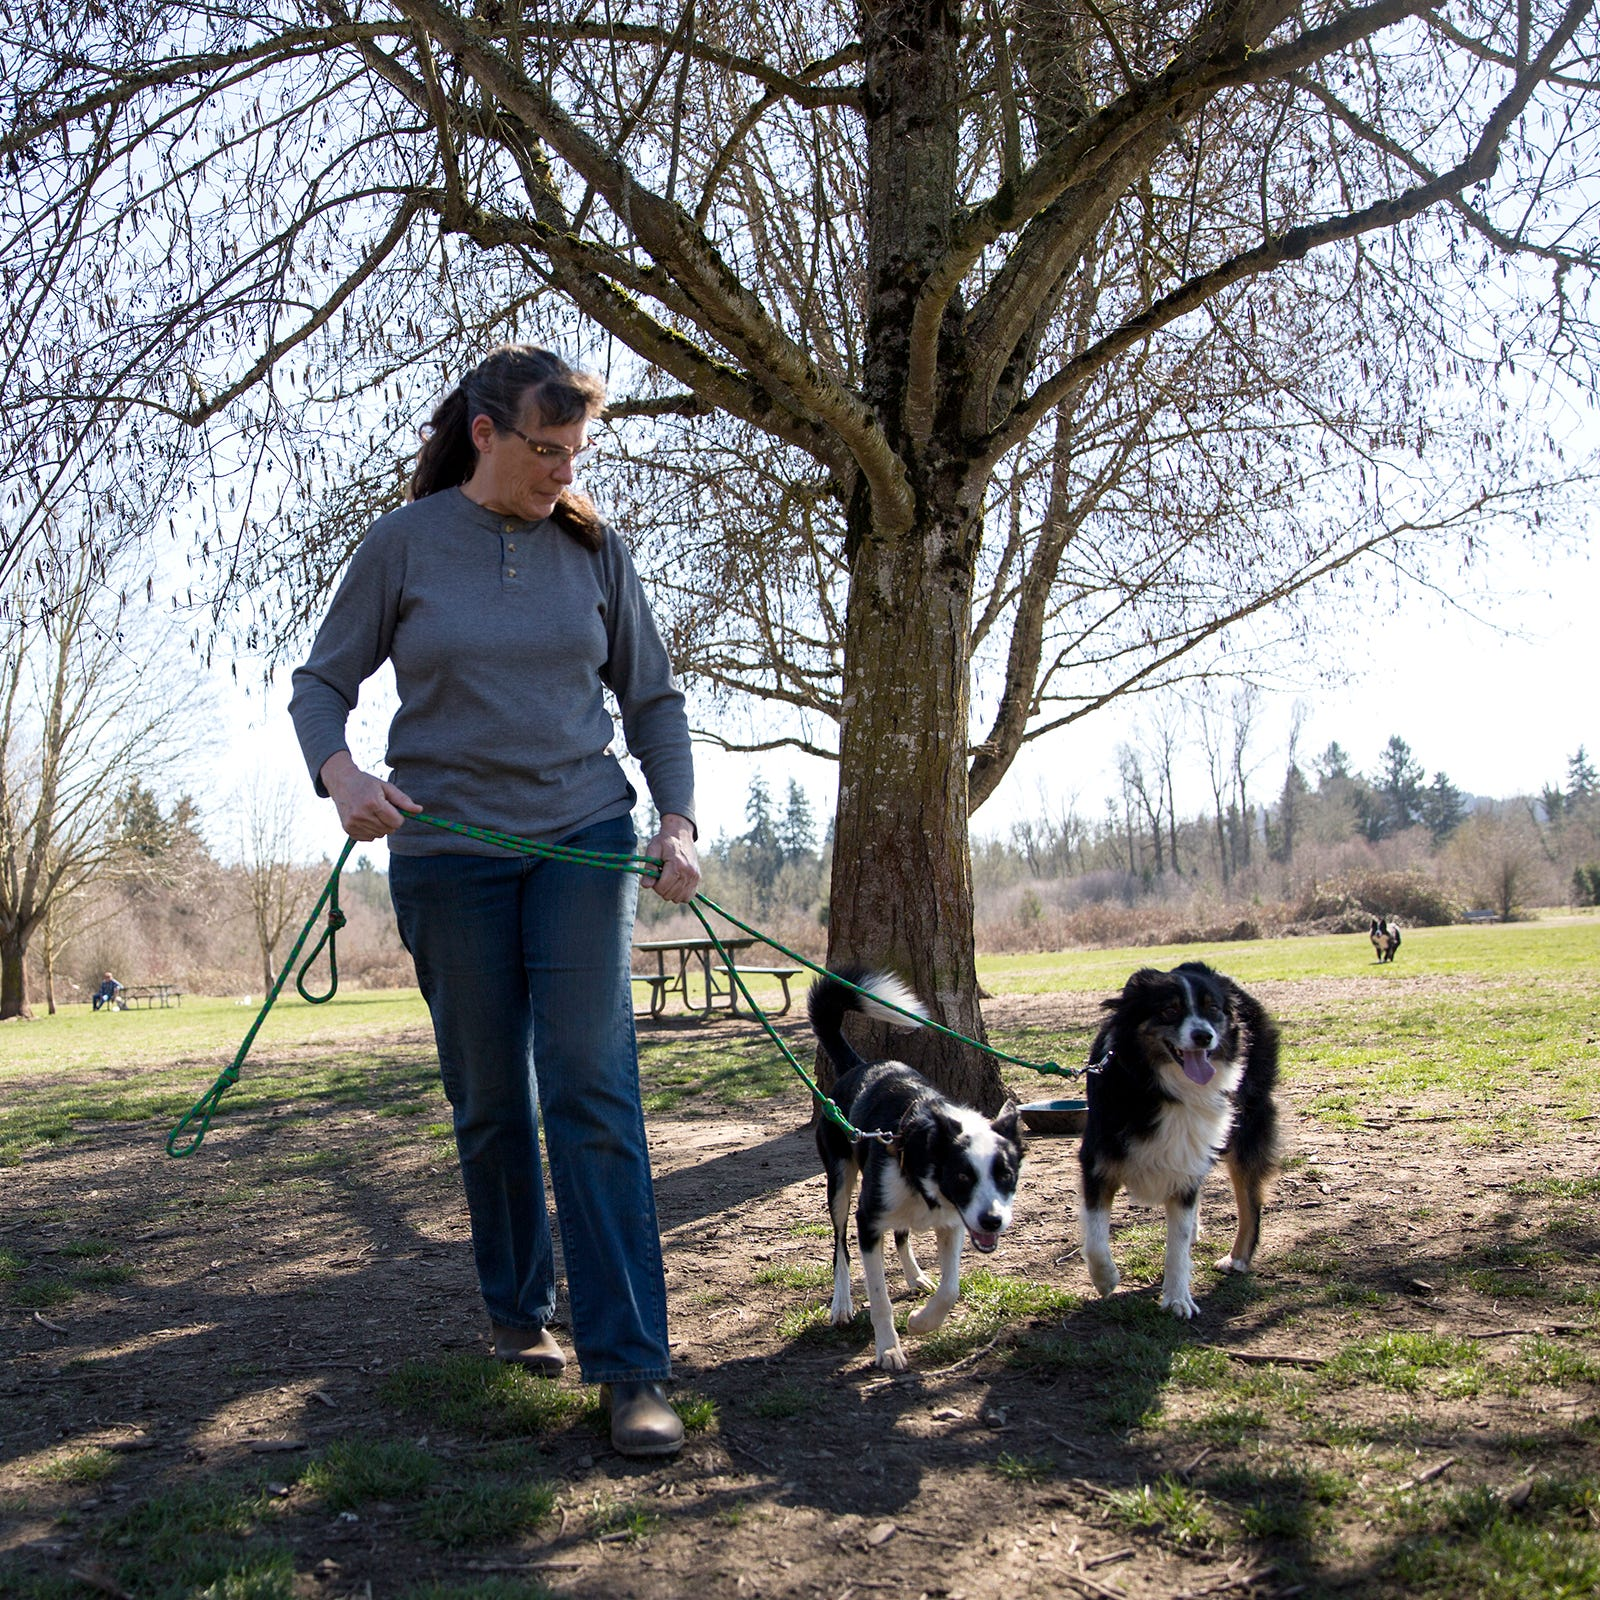 Some friendly advice on dog etiquette for dog owners, others enjoying Minto Brown Island Park